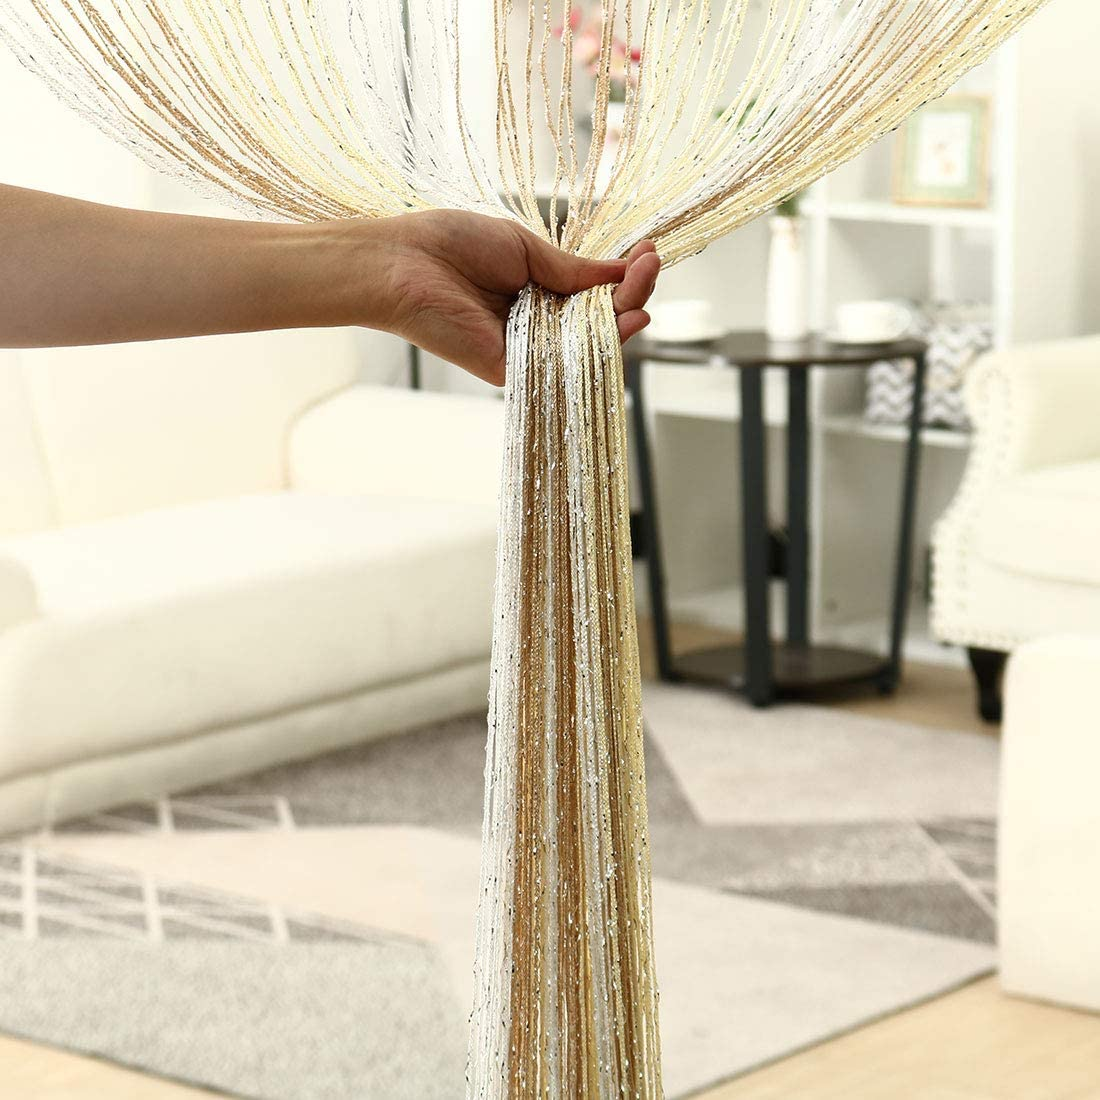 WH Thread Strip Backdrop Bedroom Door Window Divider for Wedding Hotel Decoration #11 uxcell String Curtain Fringe Panel 39 x 79